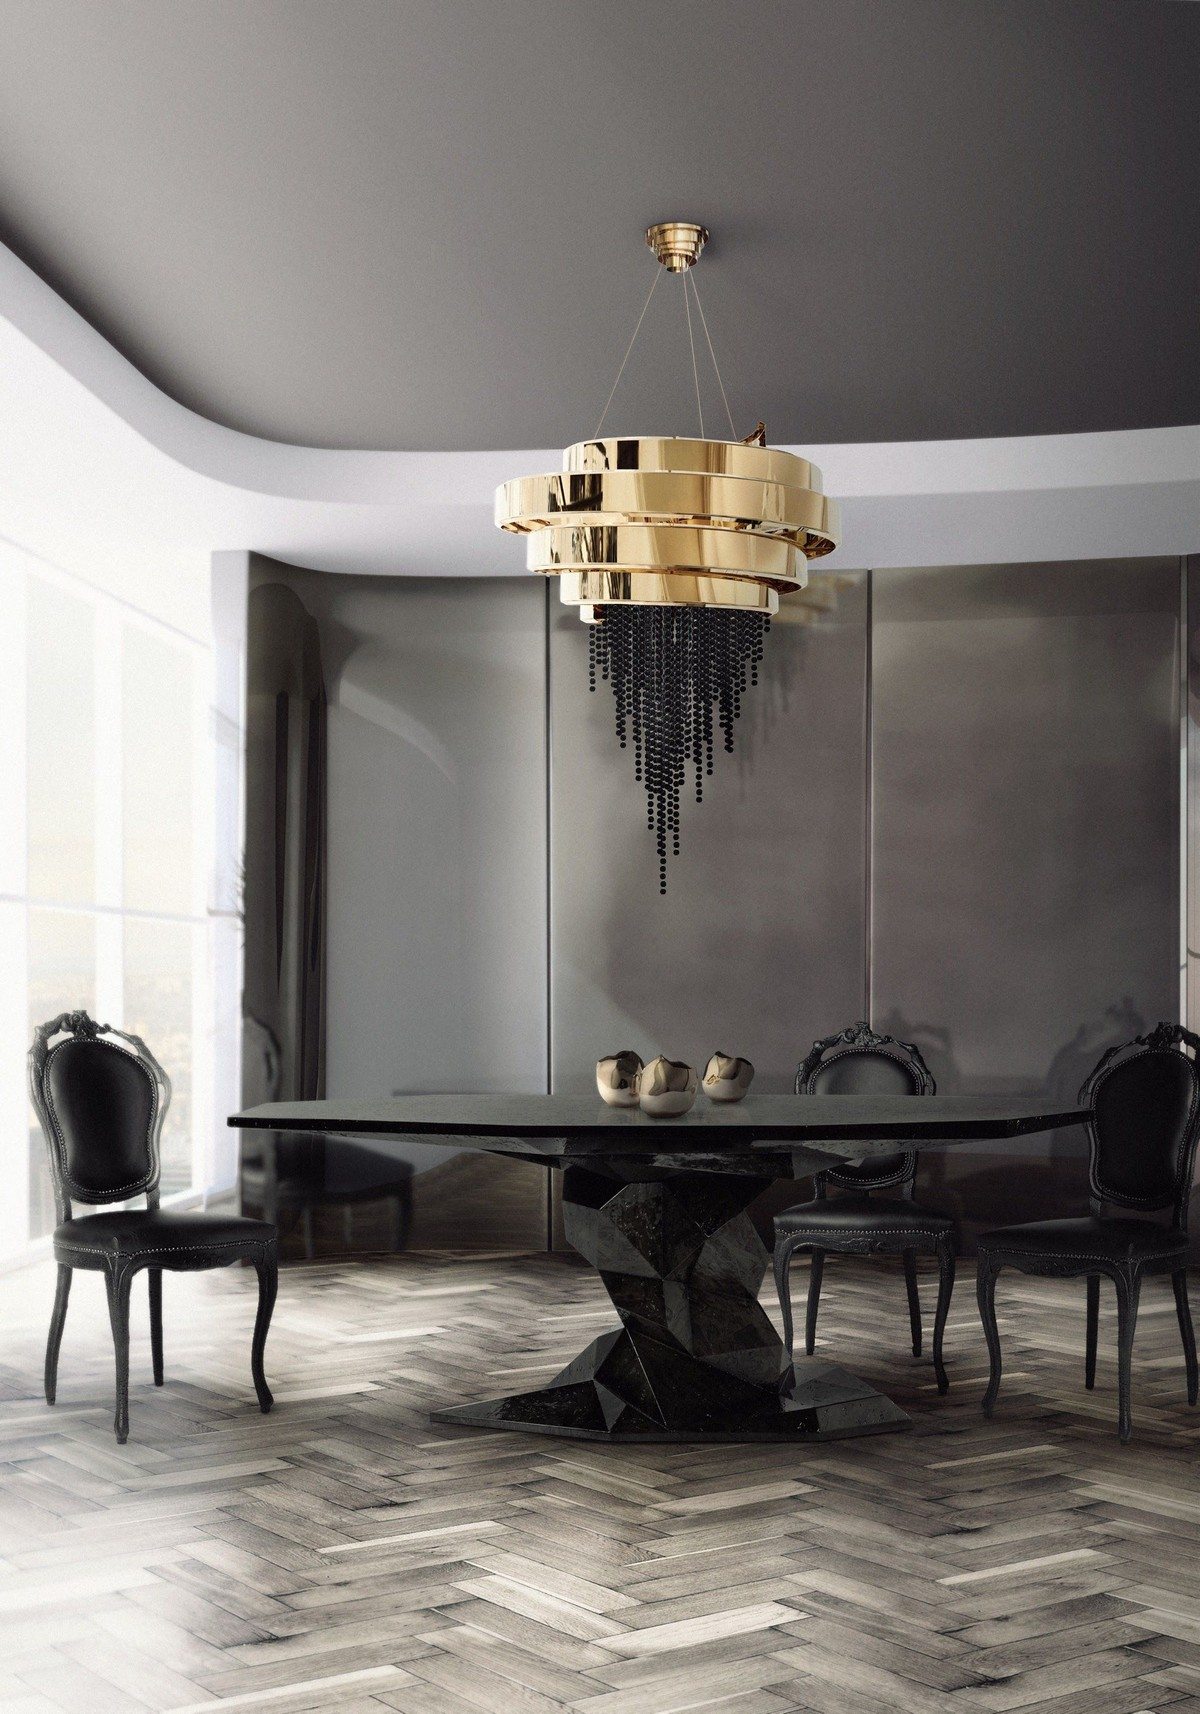 Curated Design: Contemporary Dining Room Ambiances contemporary dining room Curated Design: Contemporary Dining Room Ambiances 1 4